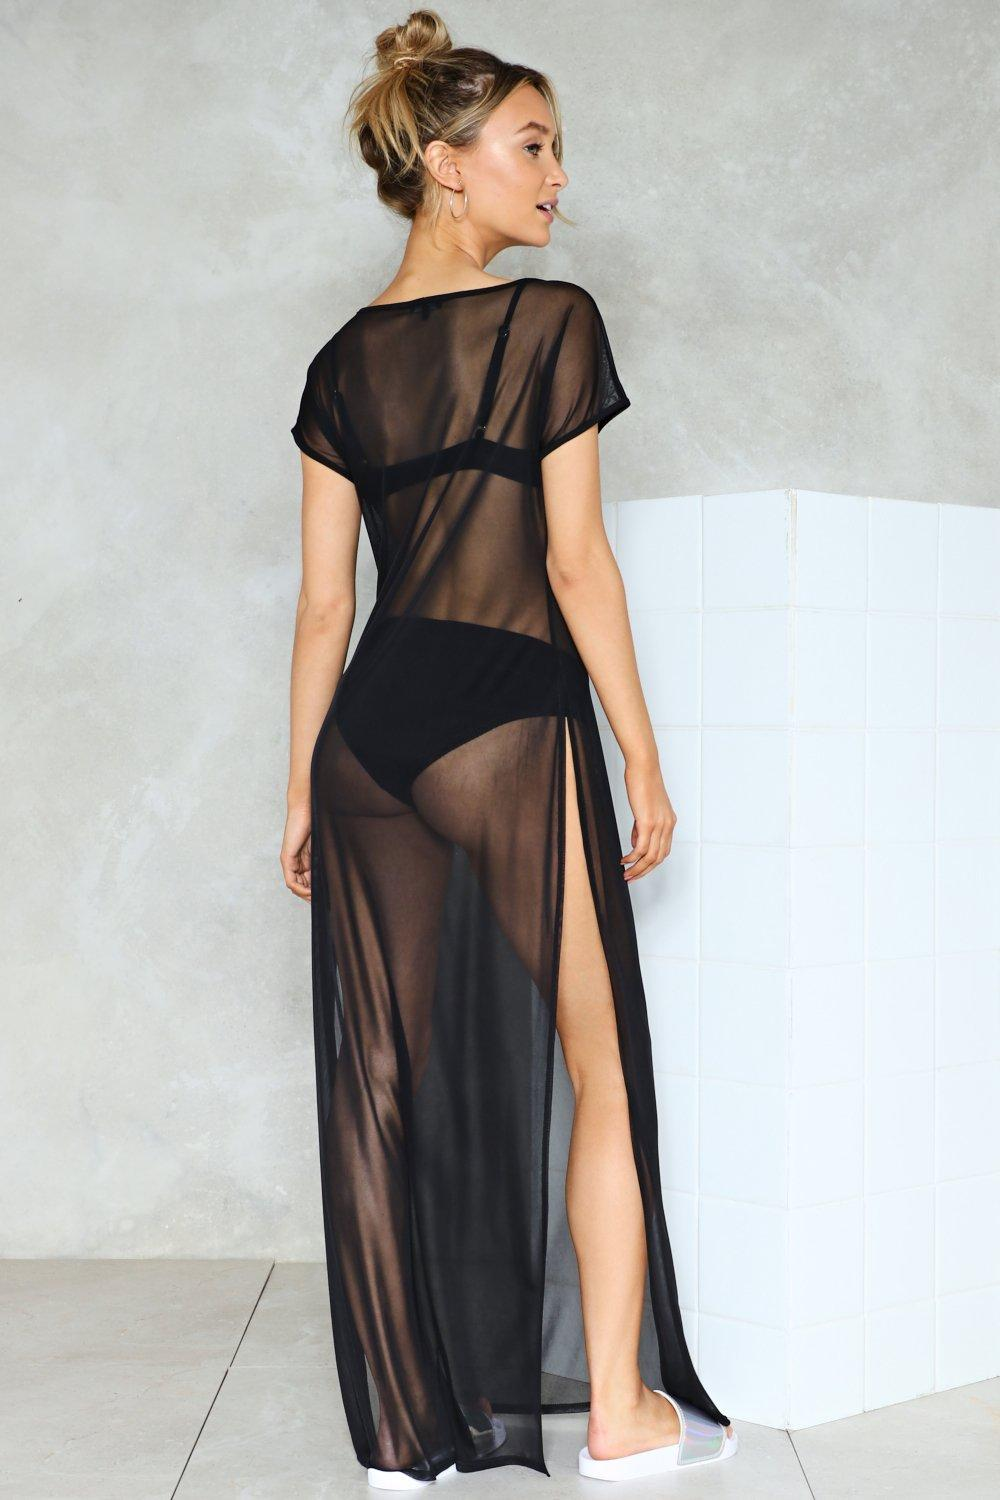 b66cdad688 Dark Hour Mesh Cover-Up | Shop Clothes at Nasty Gal!